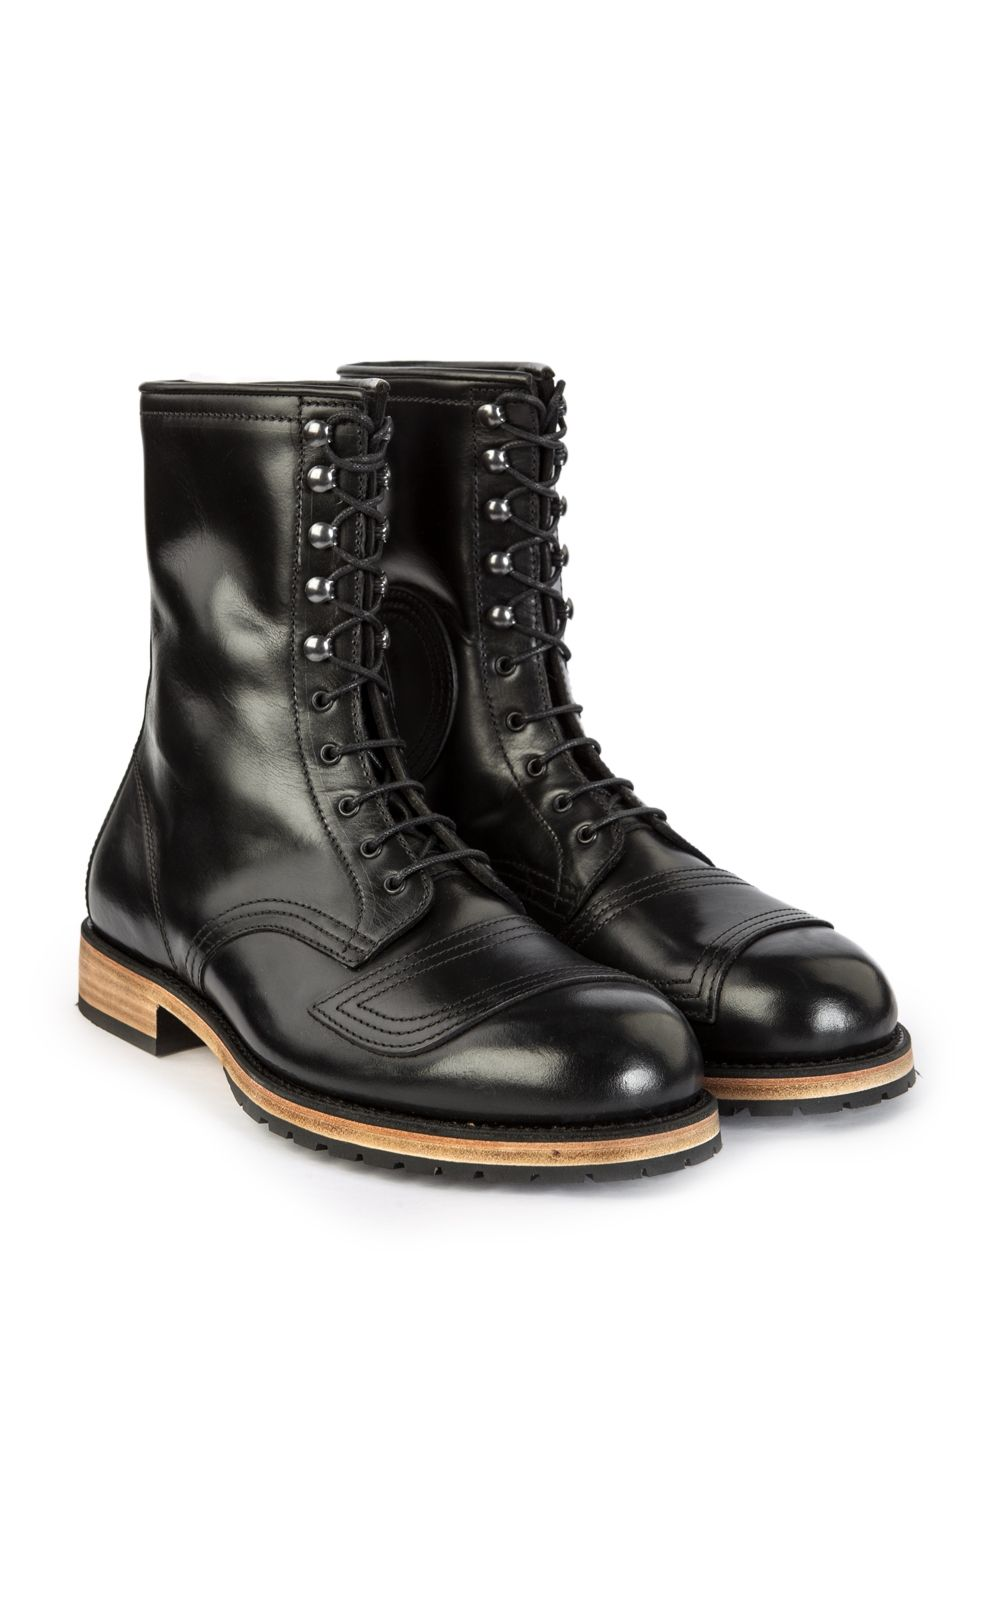 bcdca25cc9f55 Pike Brothers 1966 Explorer Boots Black   Footwear -Boots   Boots ...